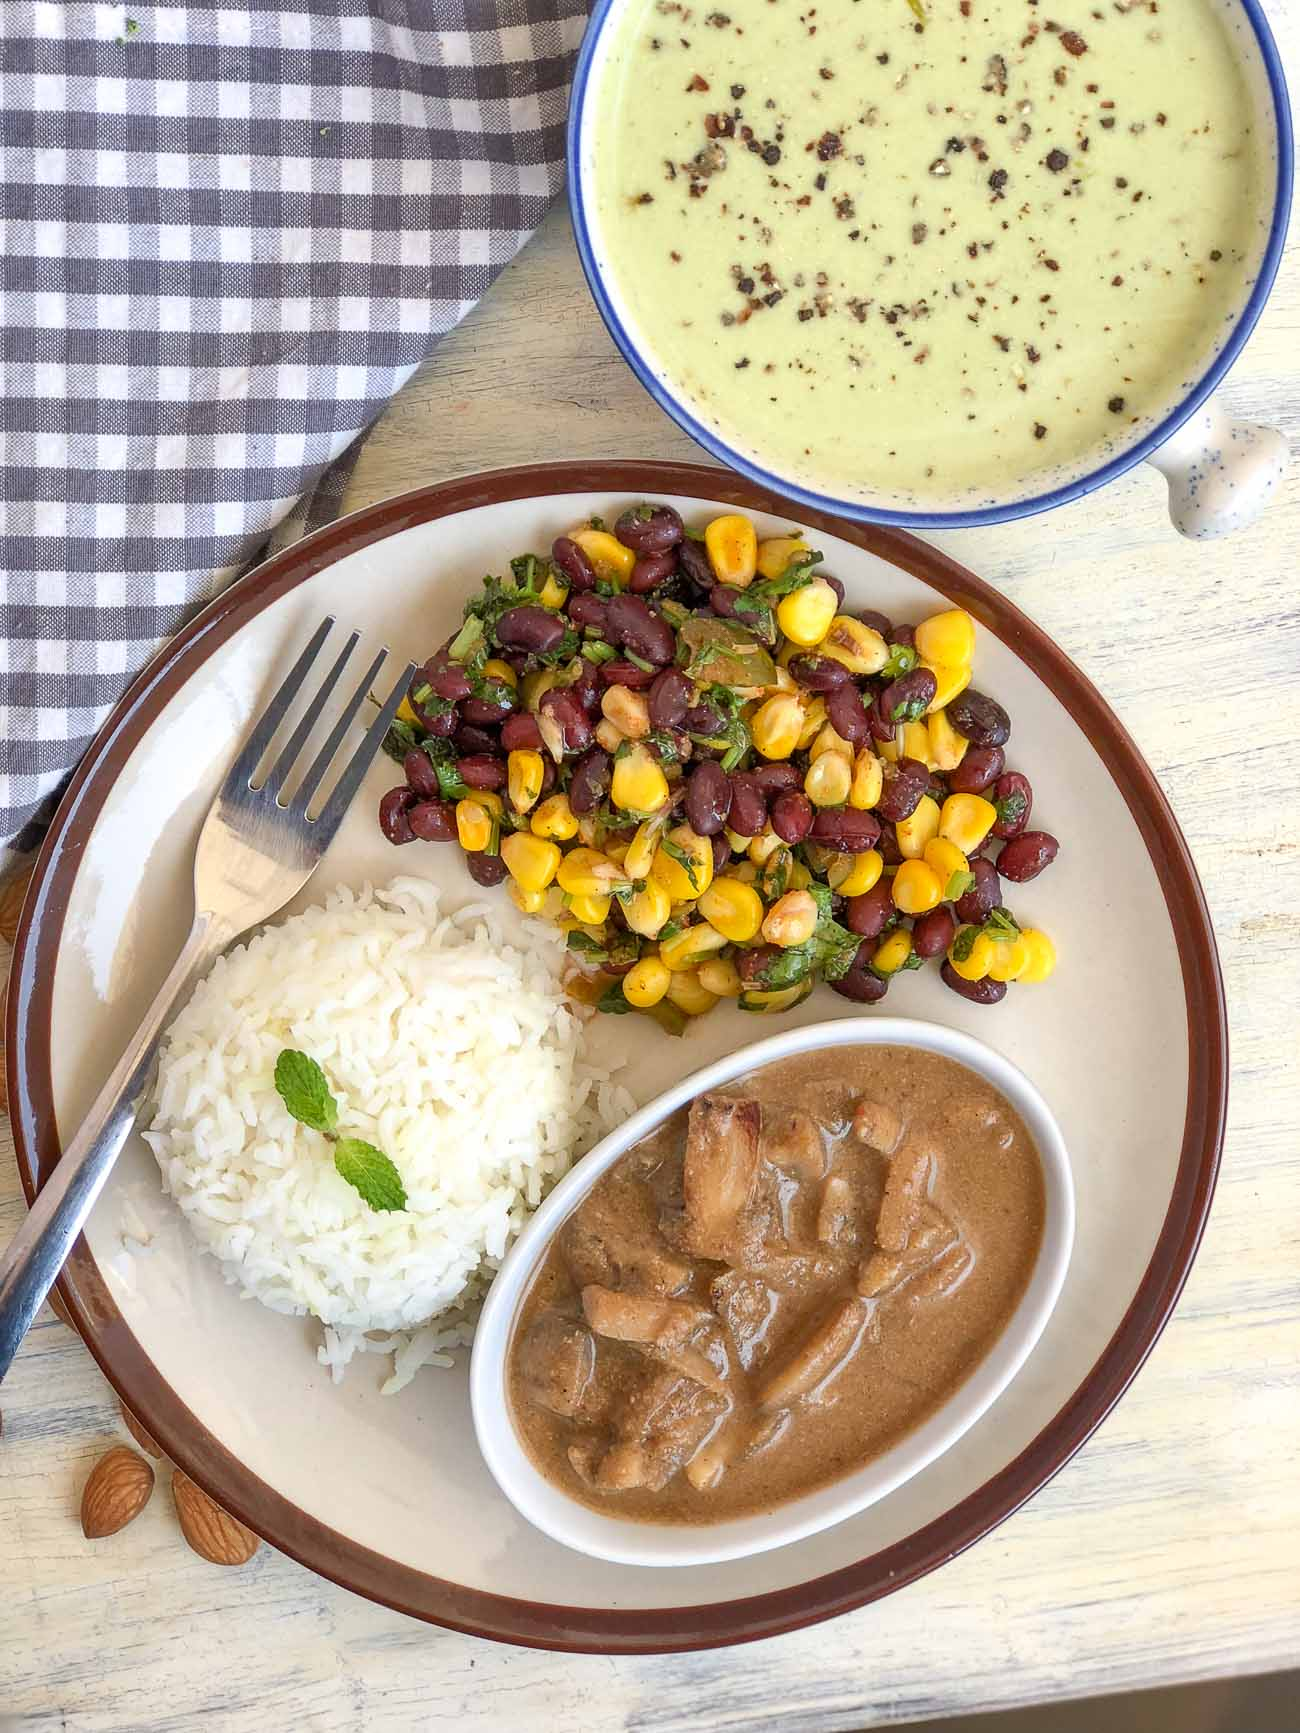 Everyday meal ideas by archanas kitchen heres a delicious meal of mushroom shagoti broccoli soup salad rice forumfinder Gallery